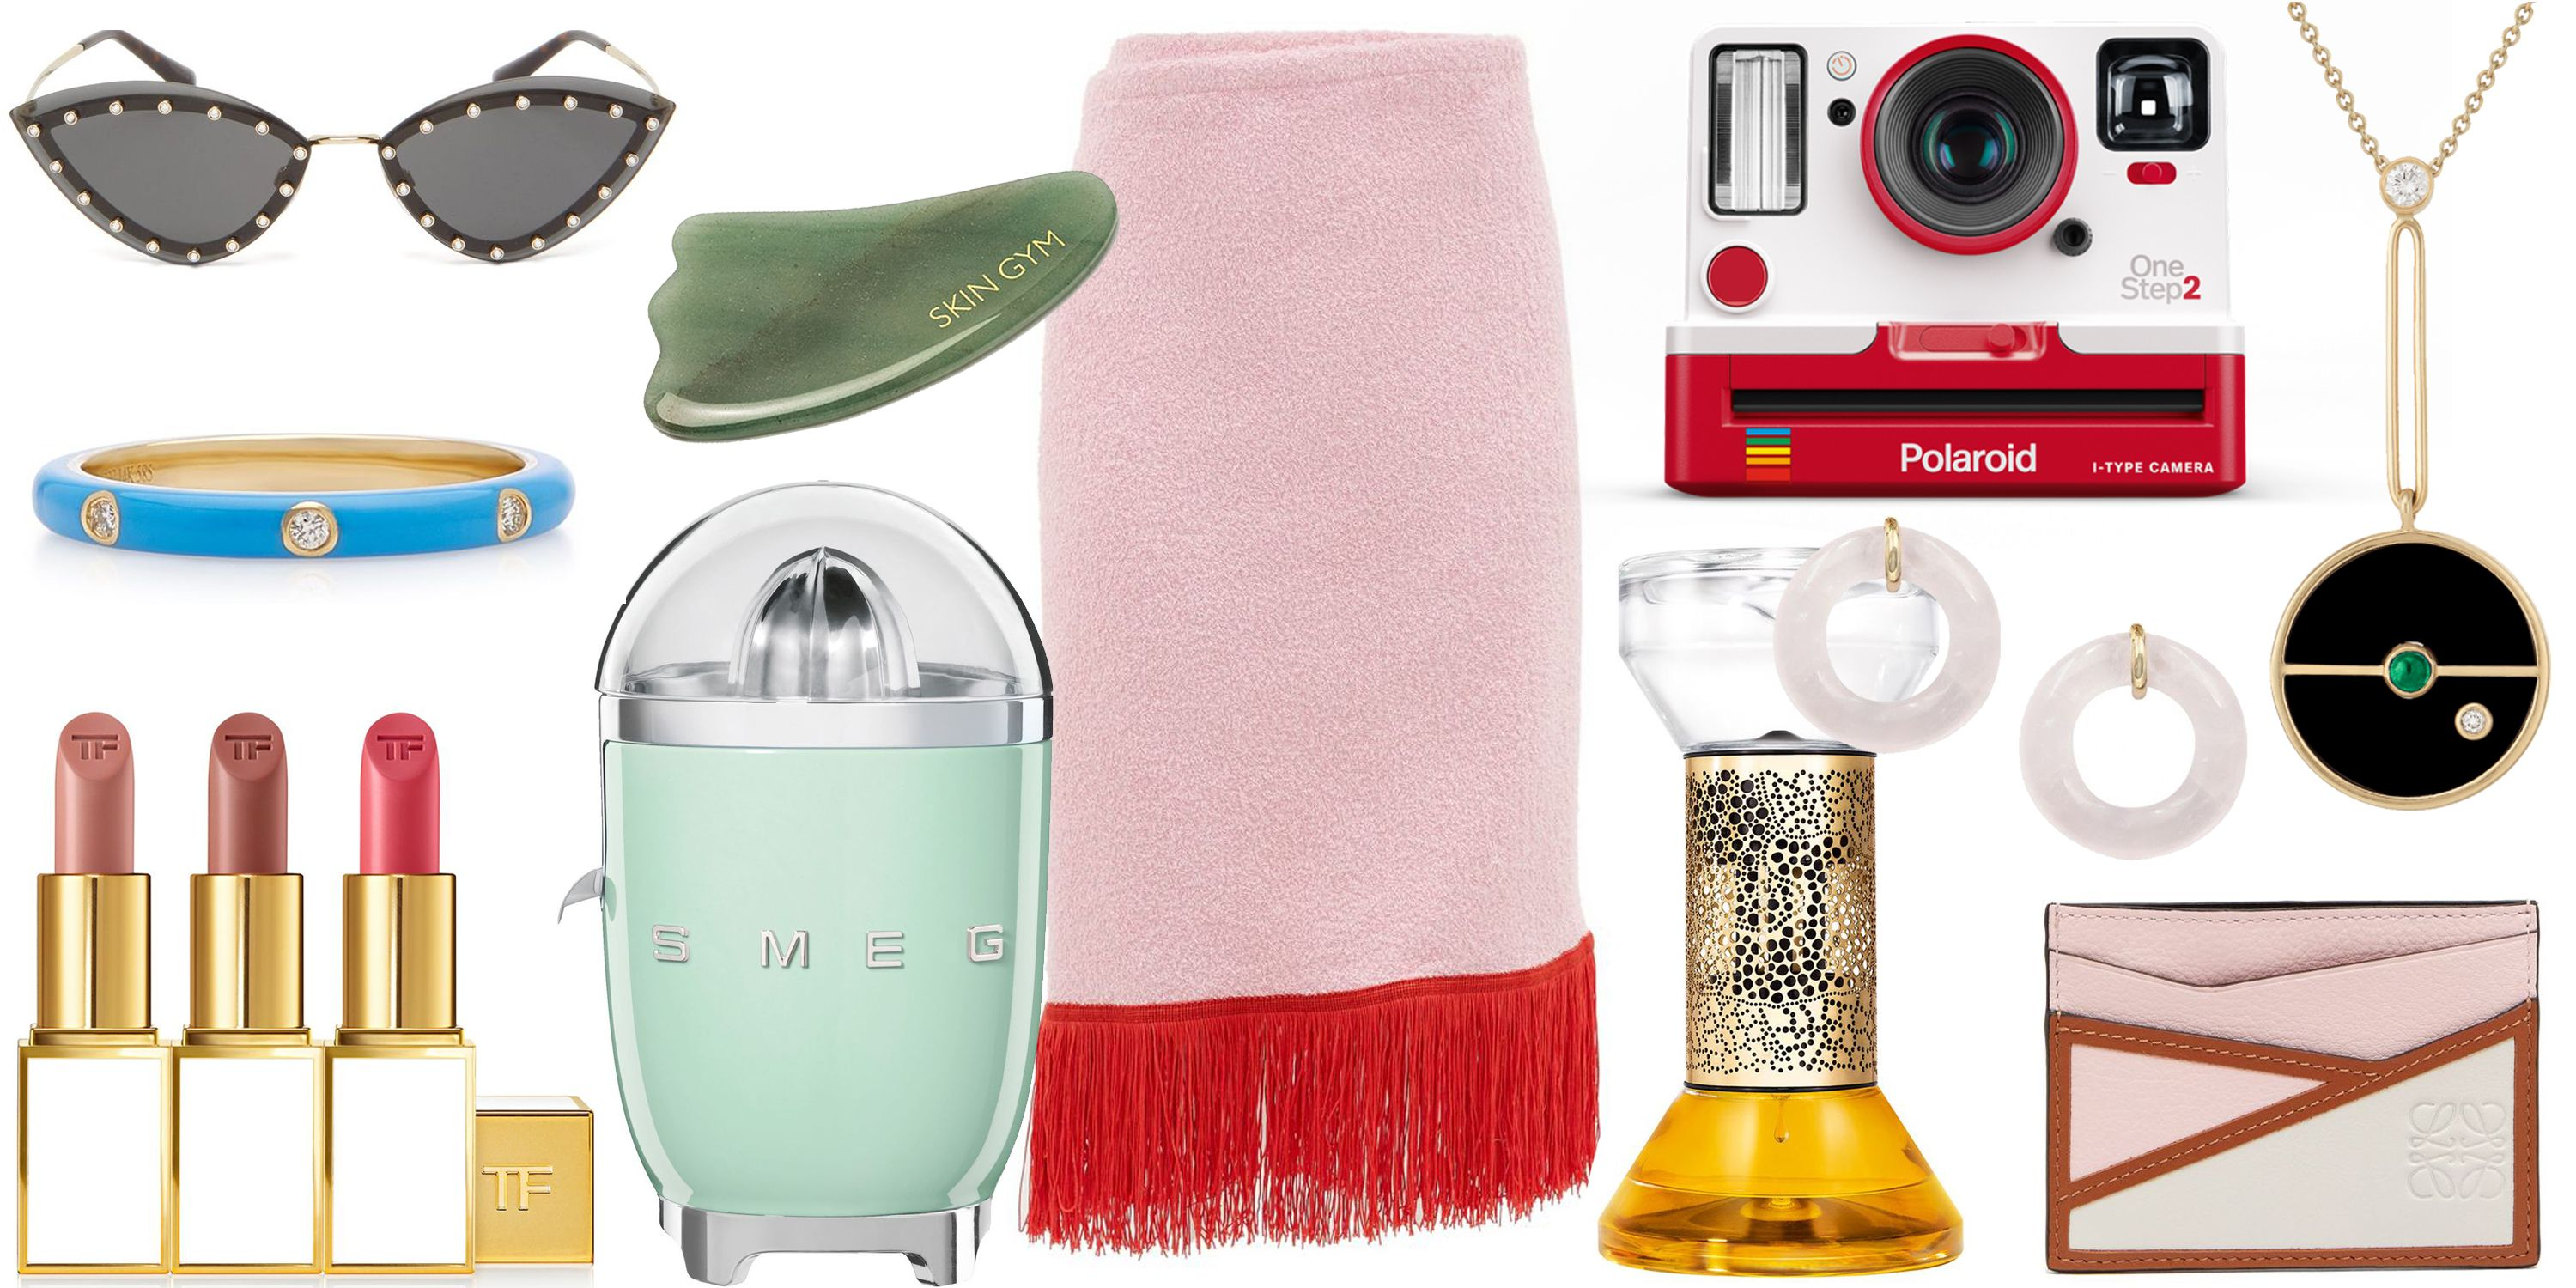 39 Best Gifts for Sister 2020 - Present